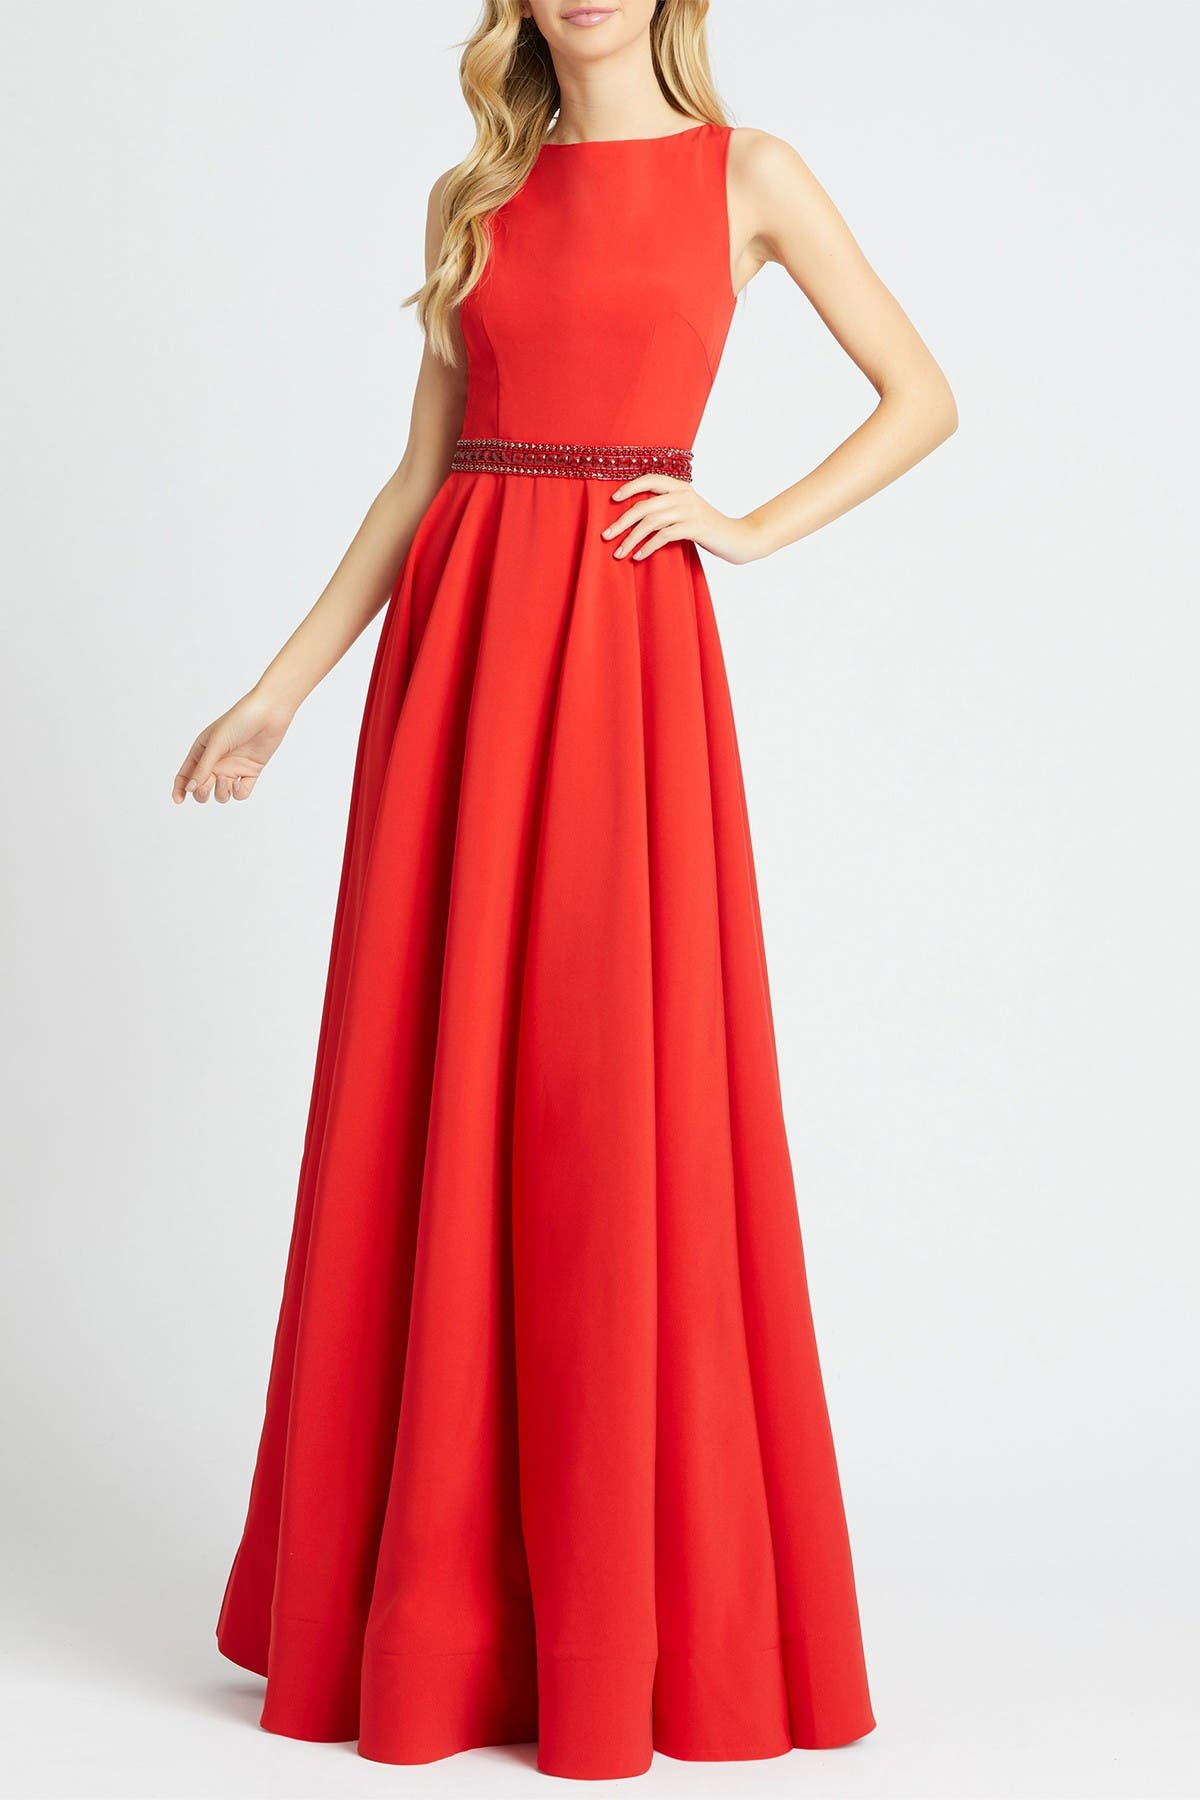 Image of Mac Duggal Boatneck Beaded Waist A-Line Gown